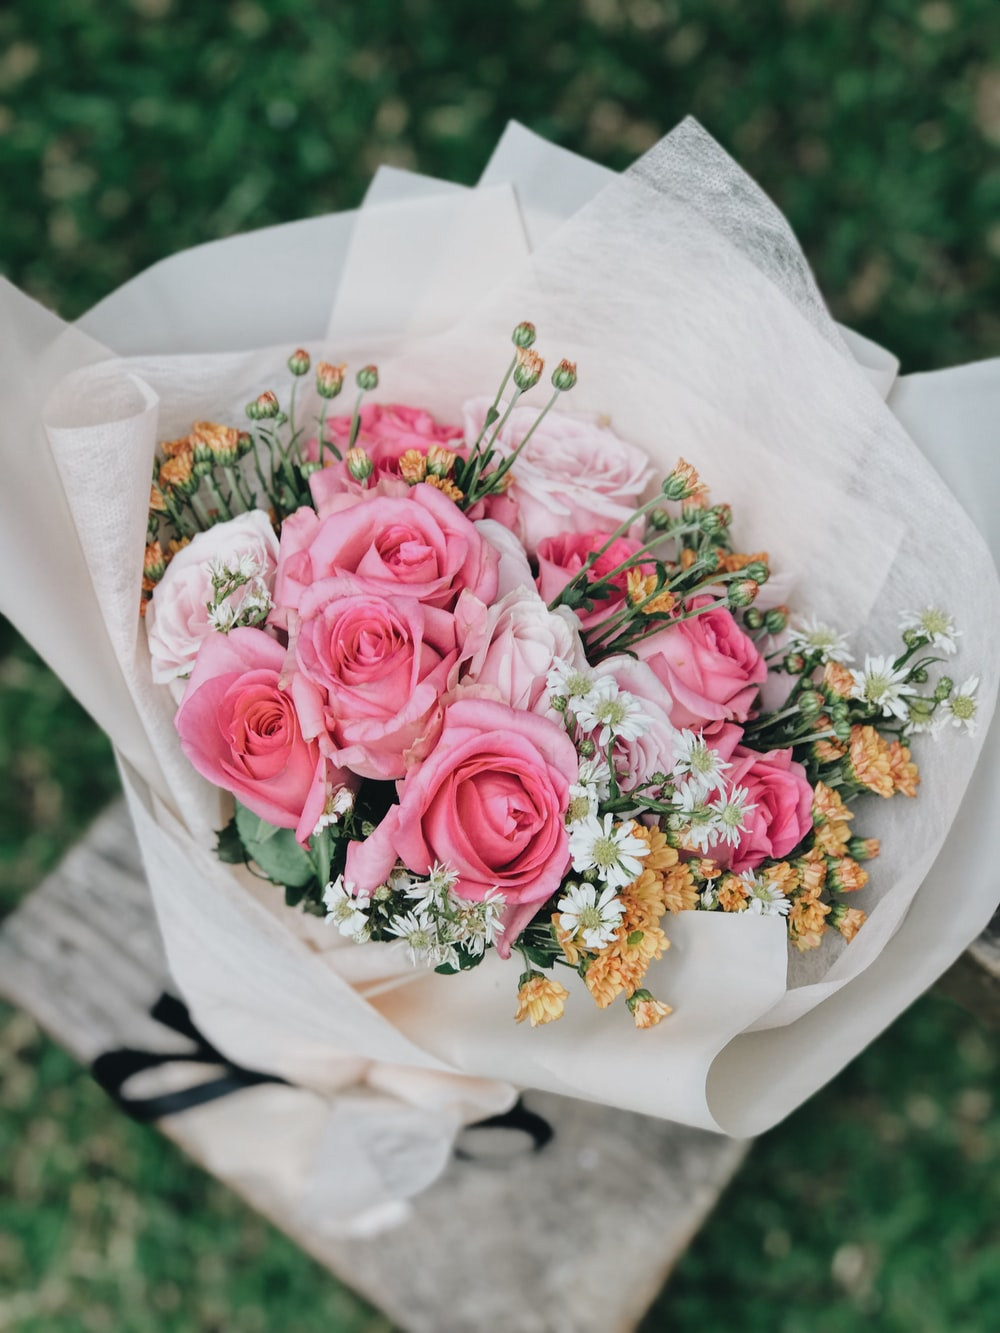 500 Bouquet Pictures Download Free Images On Unsplash